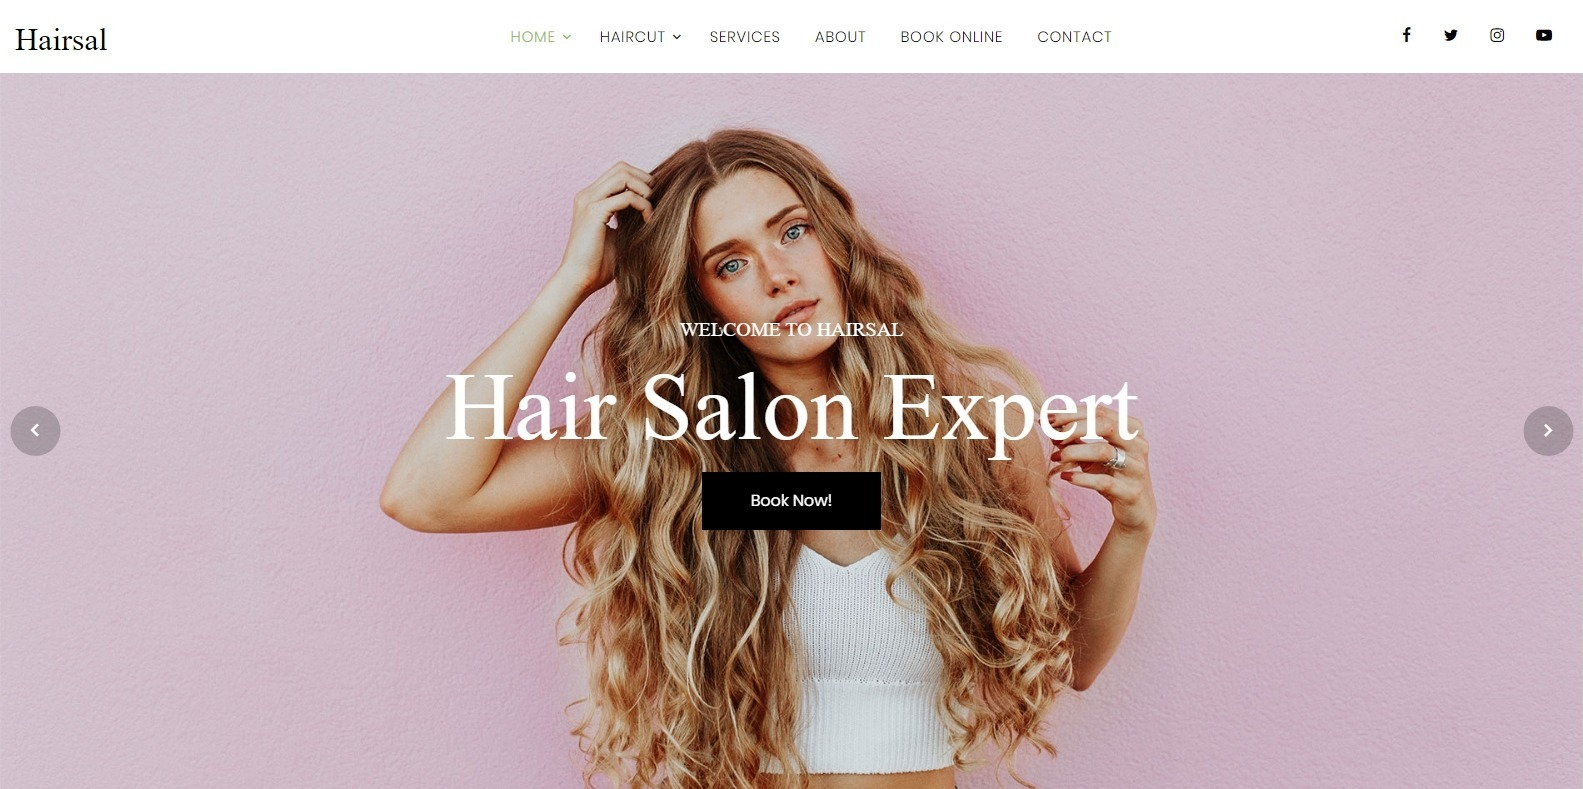 hairsal-spa-website-template